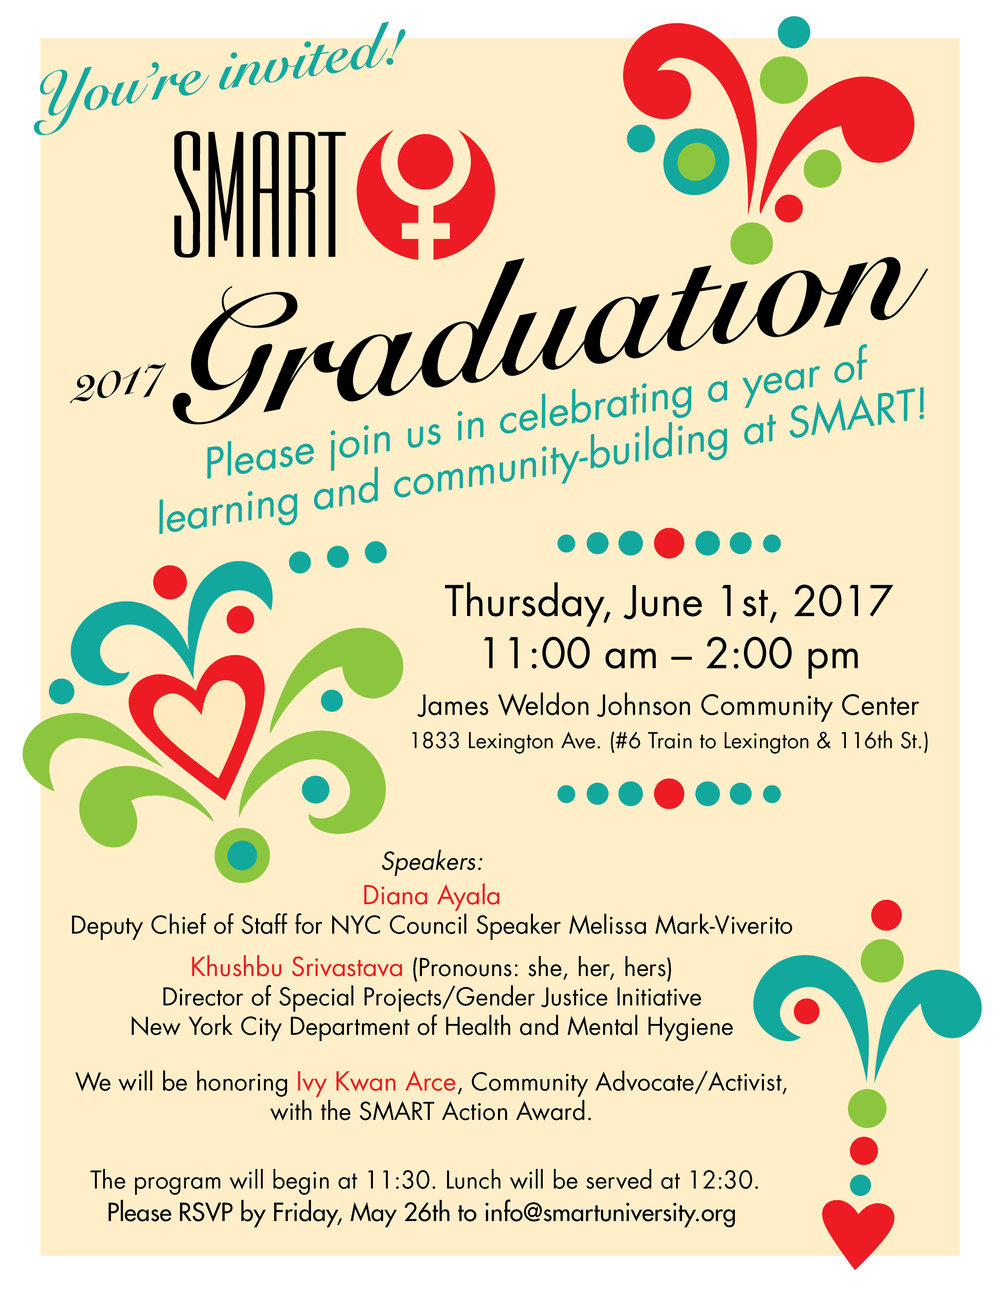 2017 Graduation evite-revised.jpg